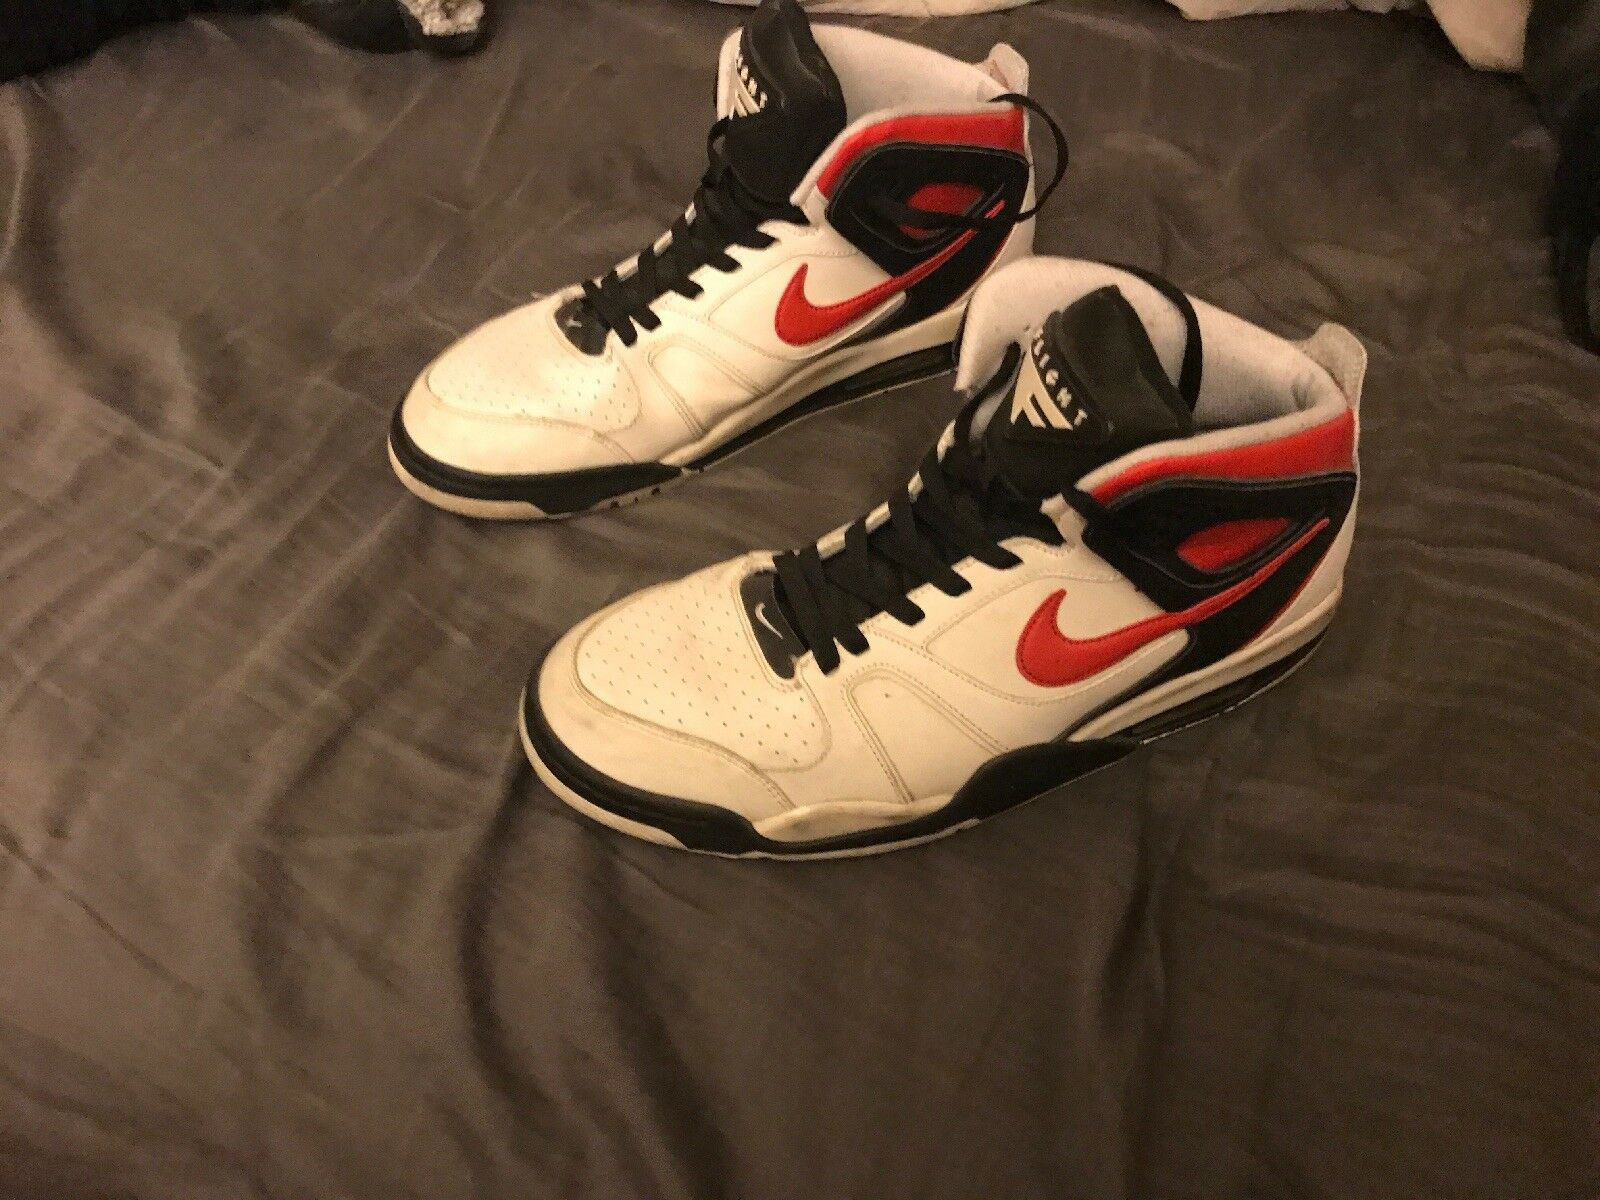 Nike Air Flight Falcon Basketball shoes size US 13 Men's 397204-161